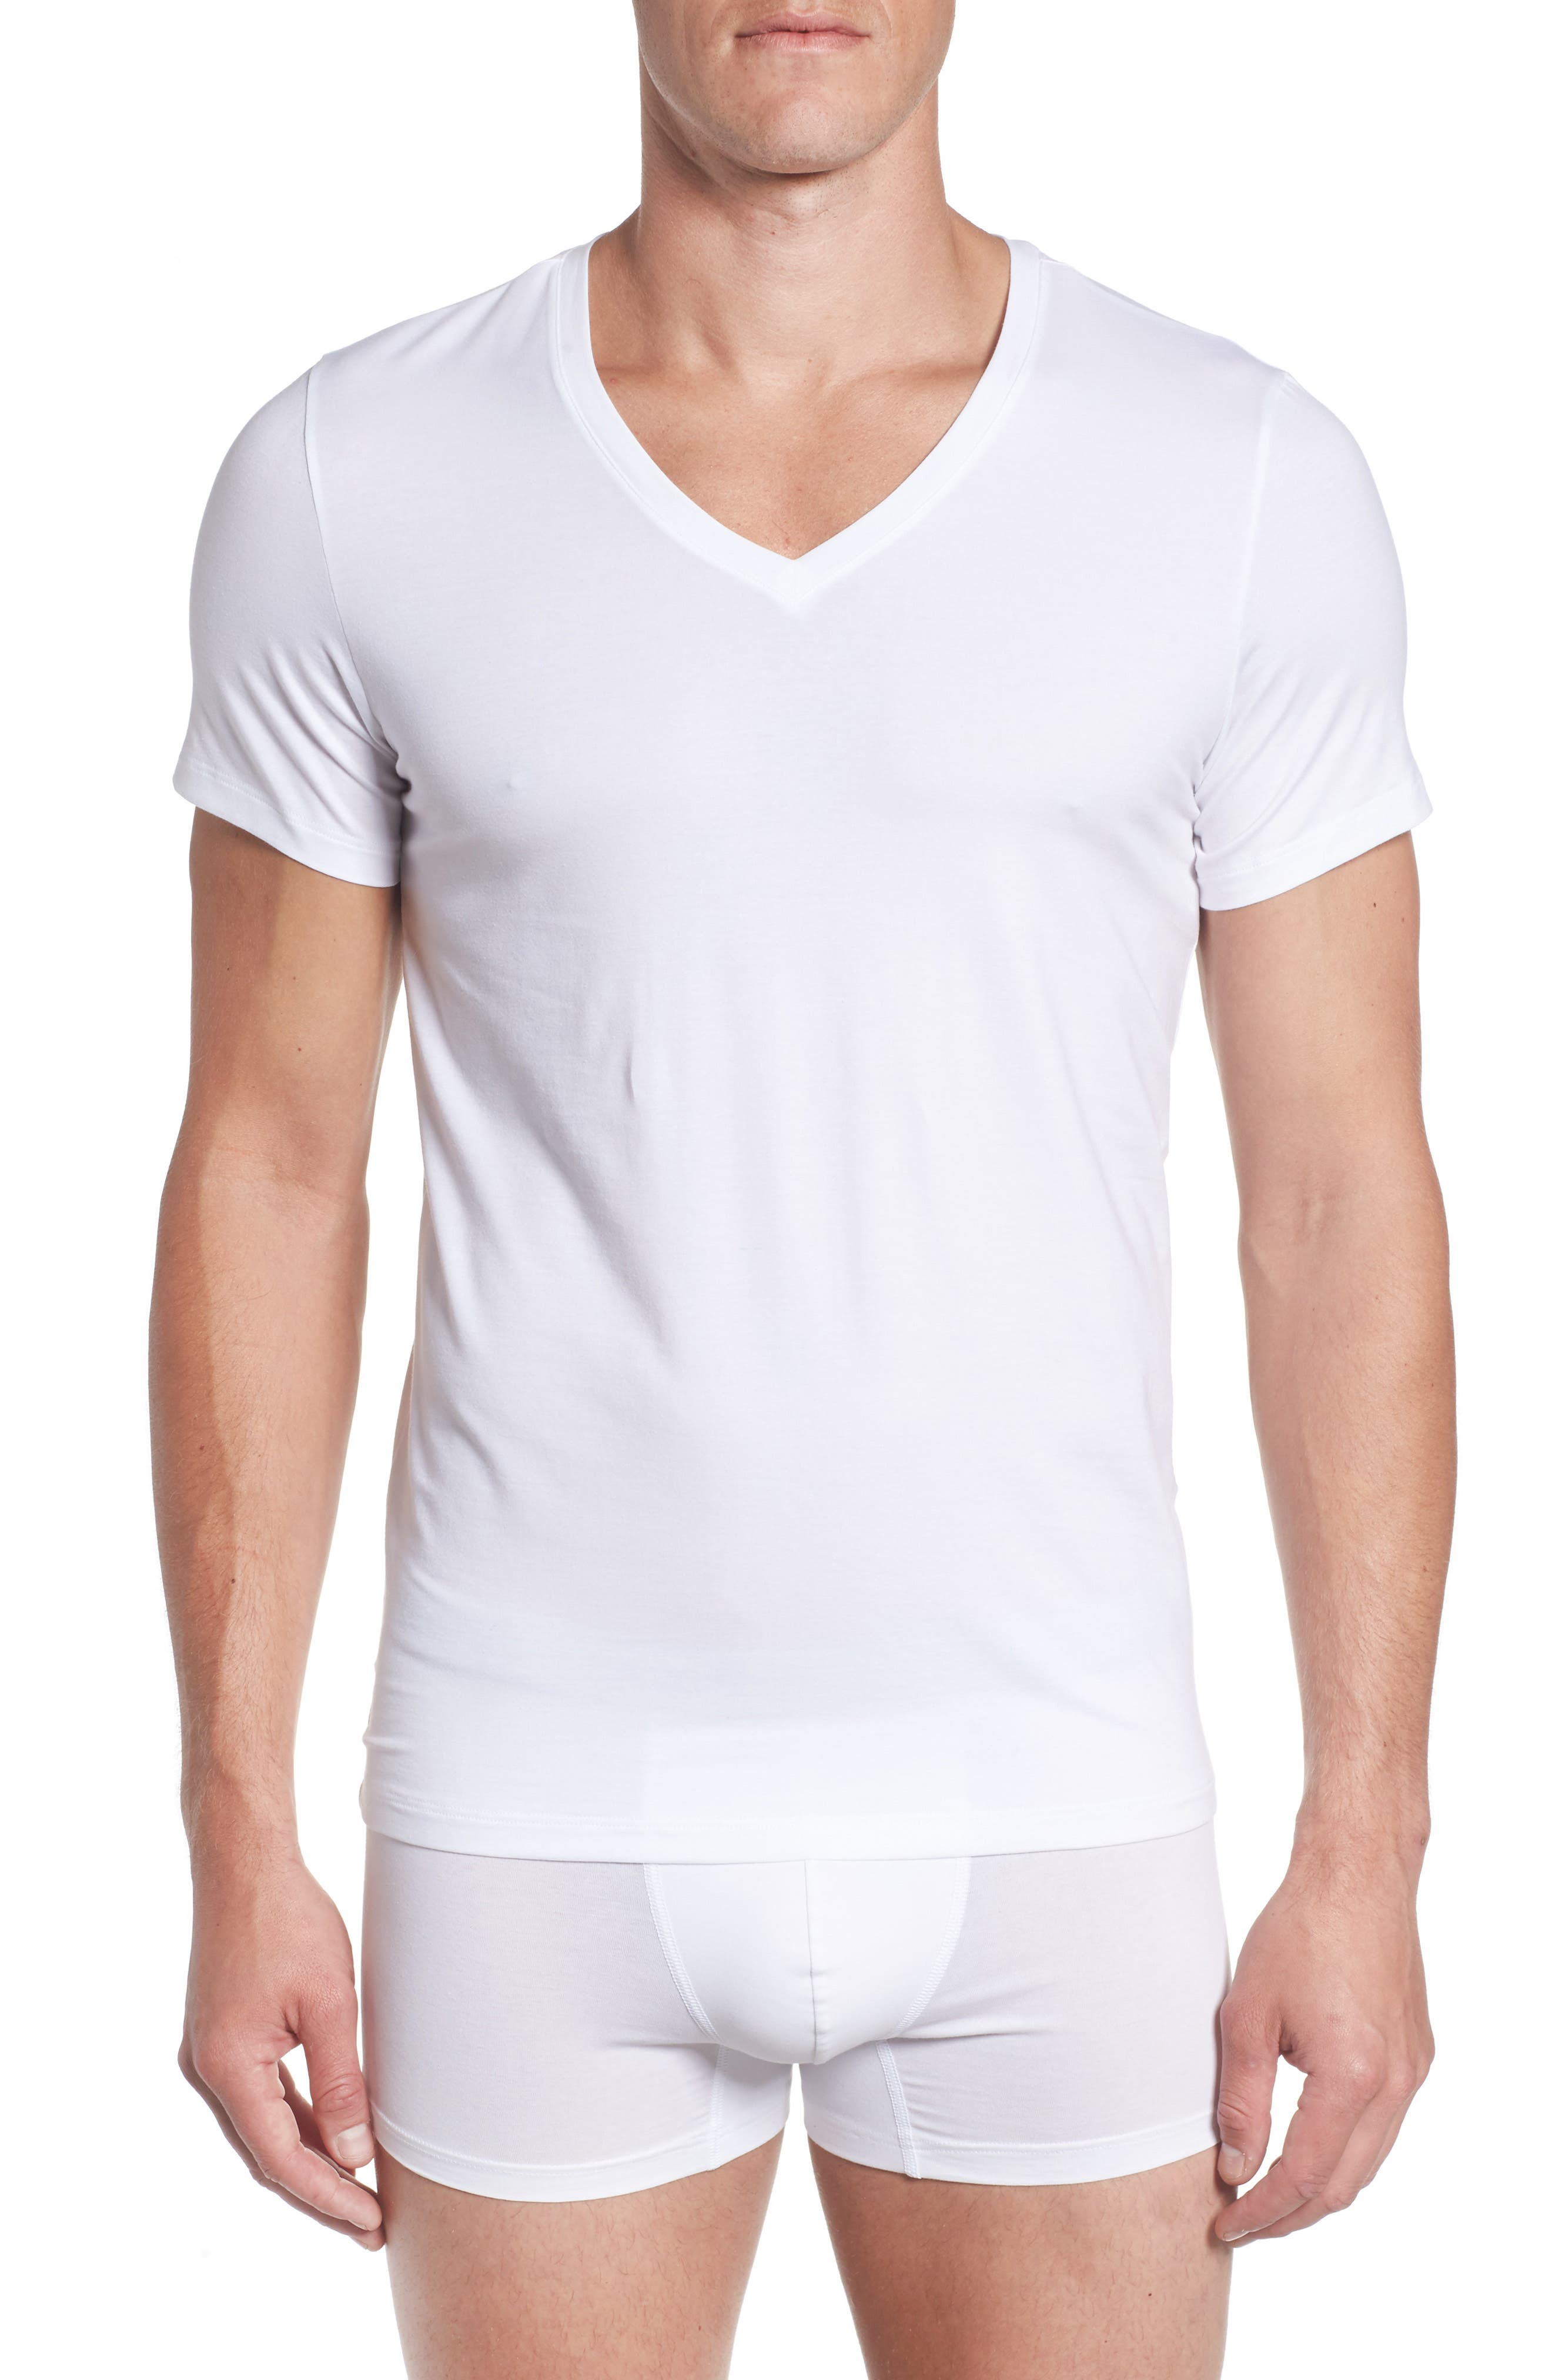 Alternate Image 1 Selected - Hanro Cotton Superior V-Neck T-Shirt